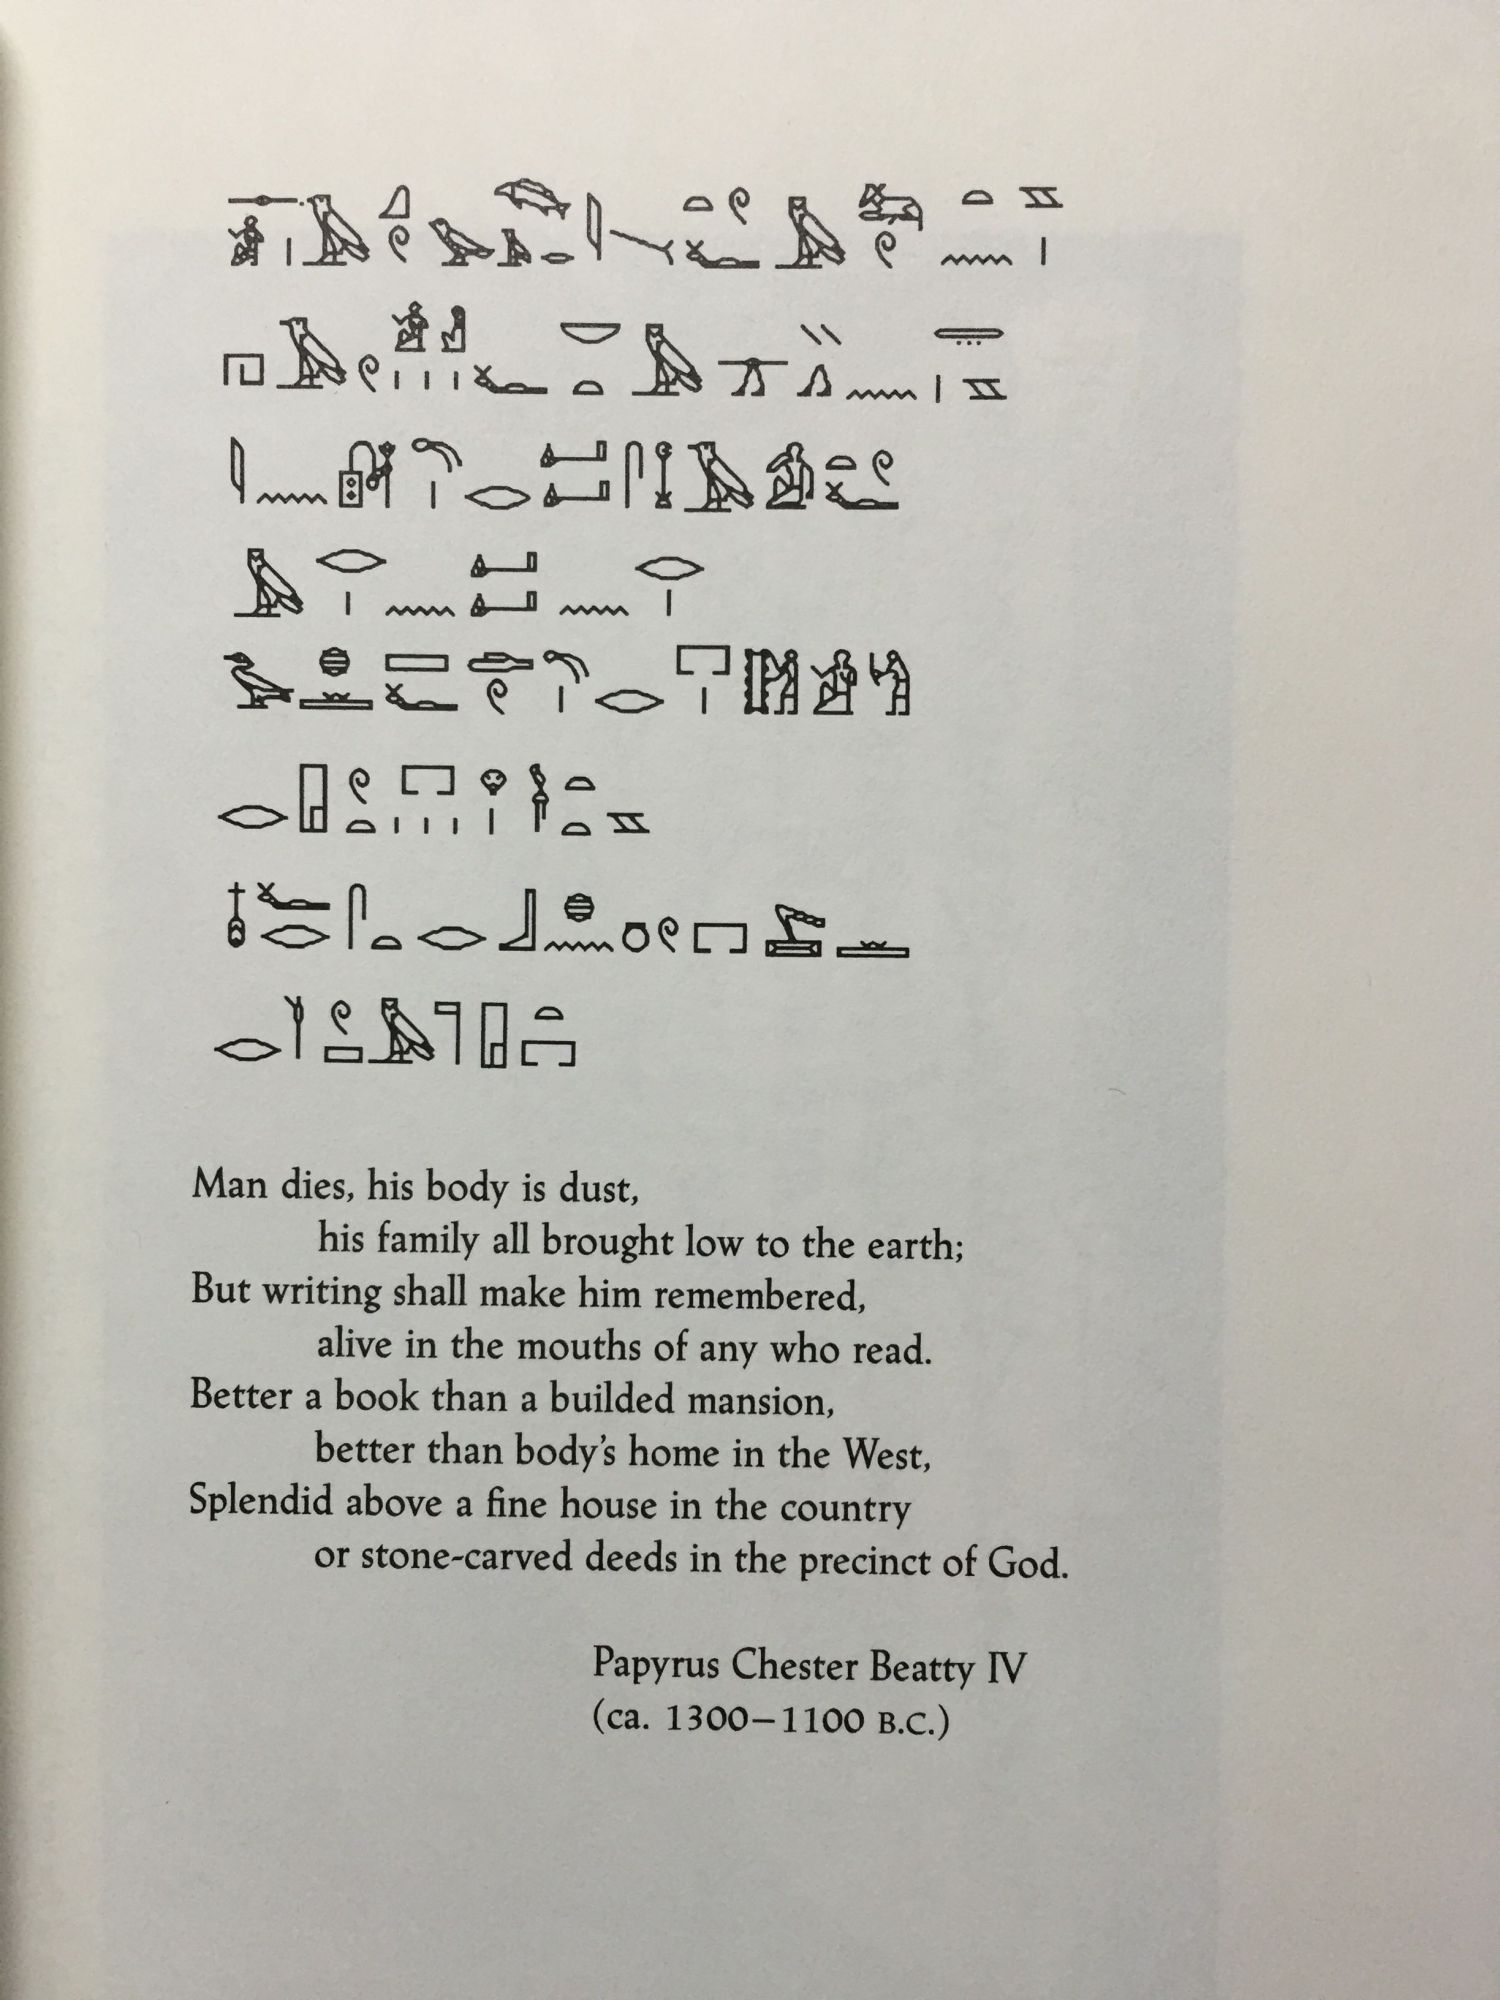 egyptian poetry Show the reader that egyptian religious poetry had in it some- thing closely akin  to our own, that to these ancient people god showed himself as a god of love.